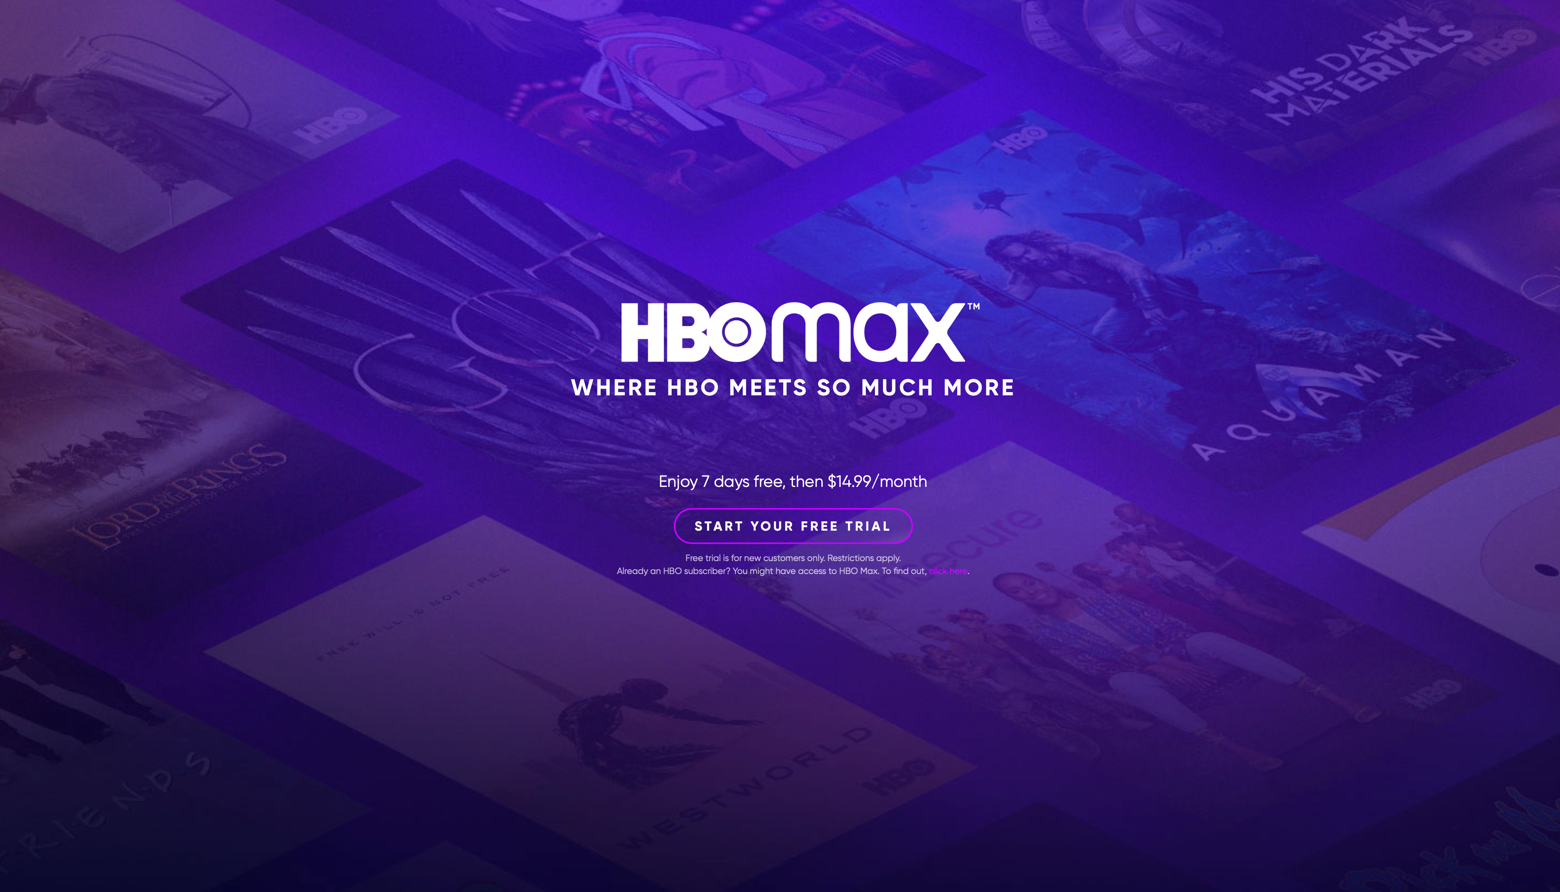 HBO Max brand